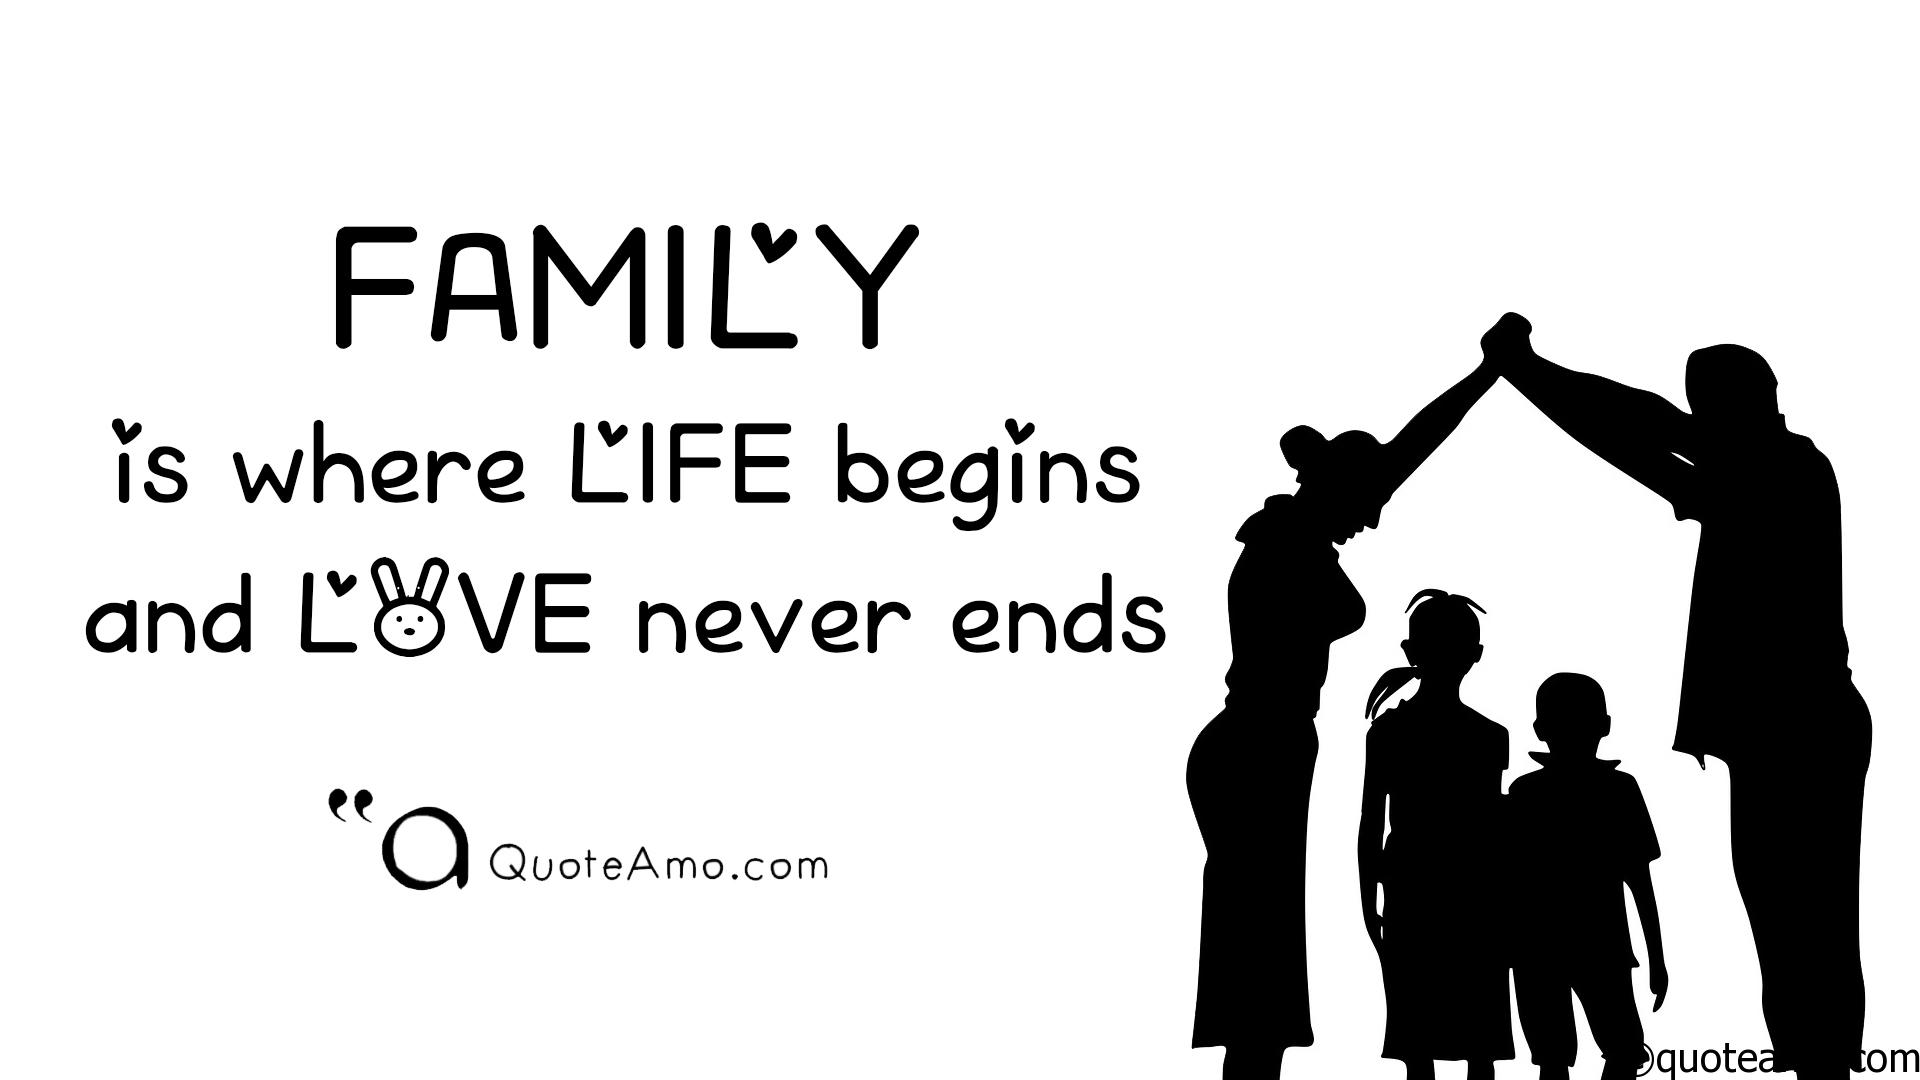 Quotes about FAMILY Background Quotes HD Screen 4 * 4